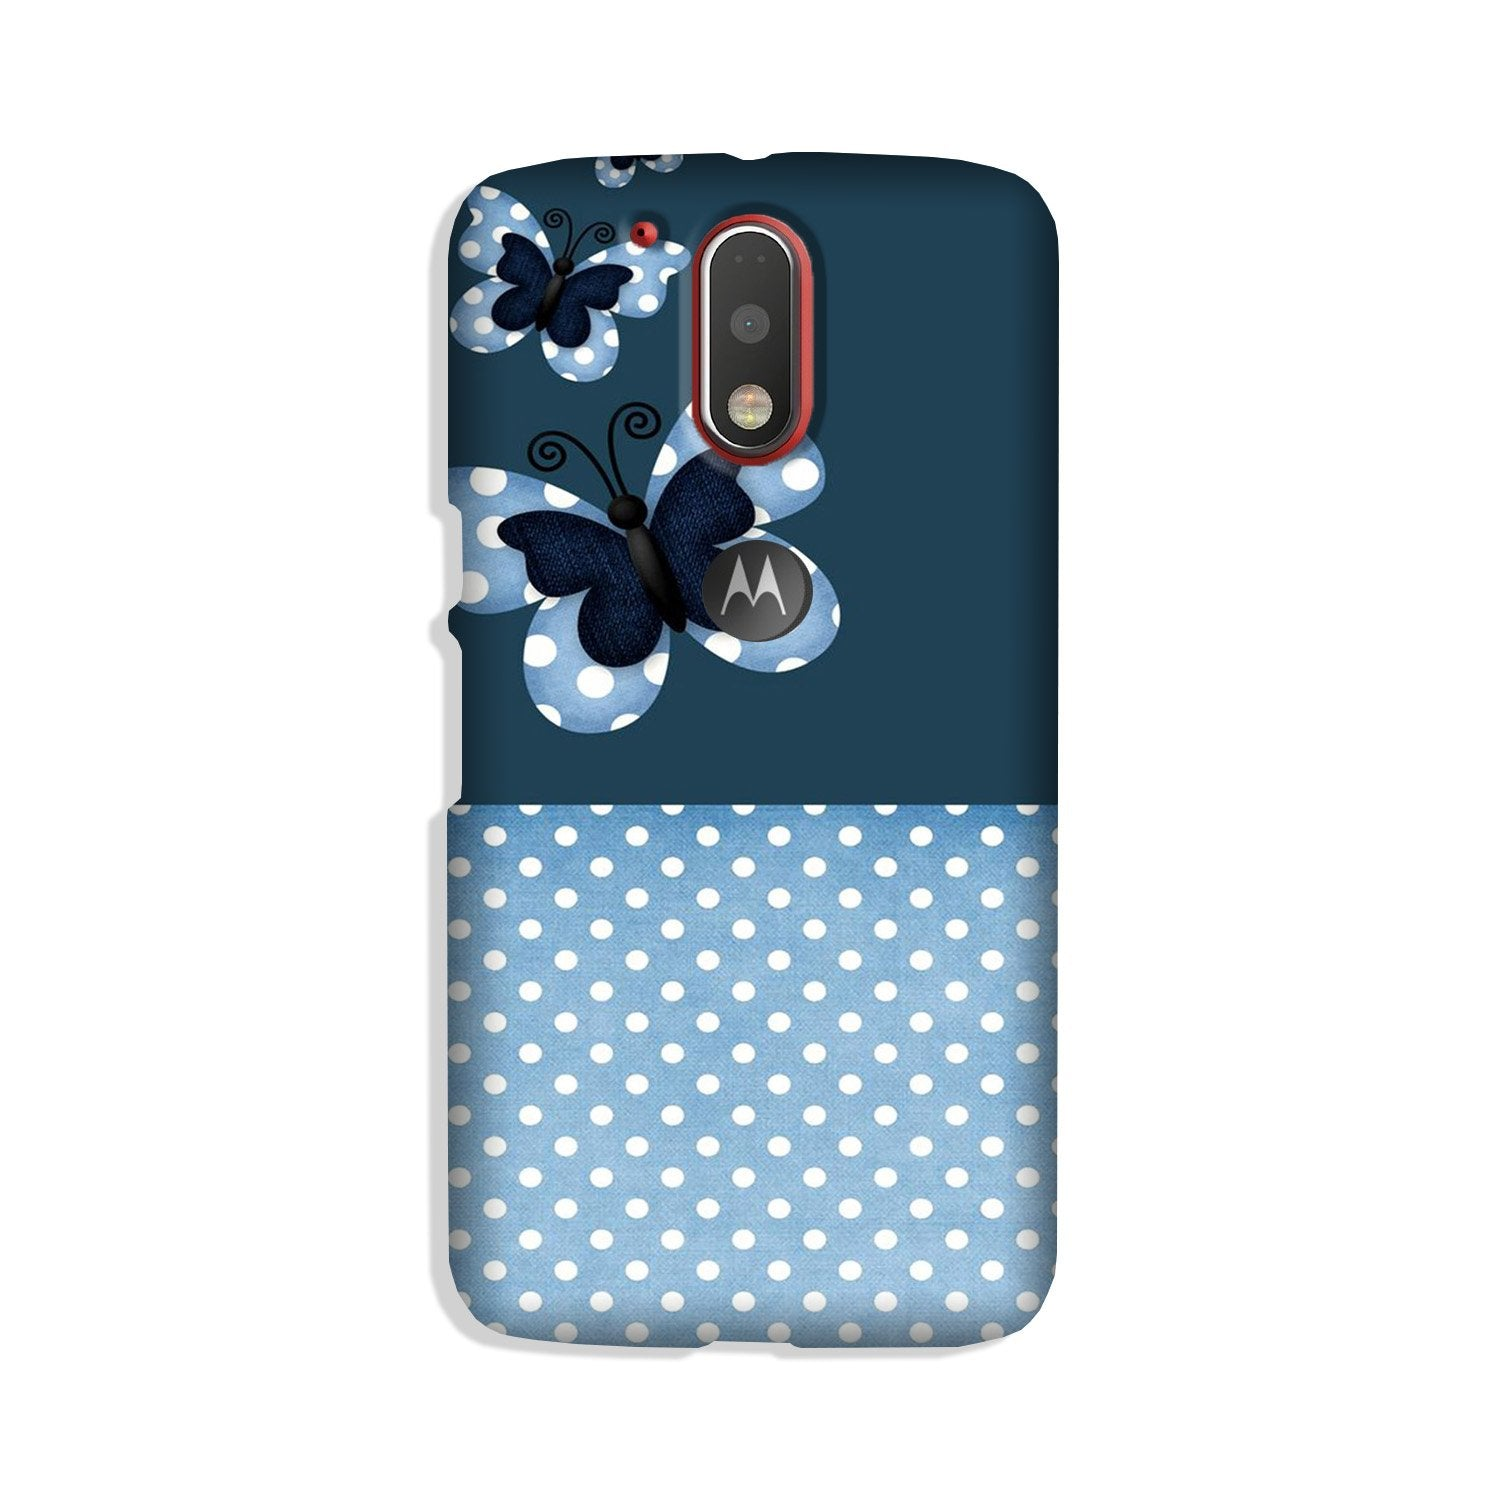 White dots Butterfly Case for Moto G4 Plus